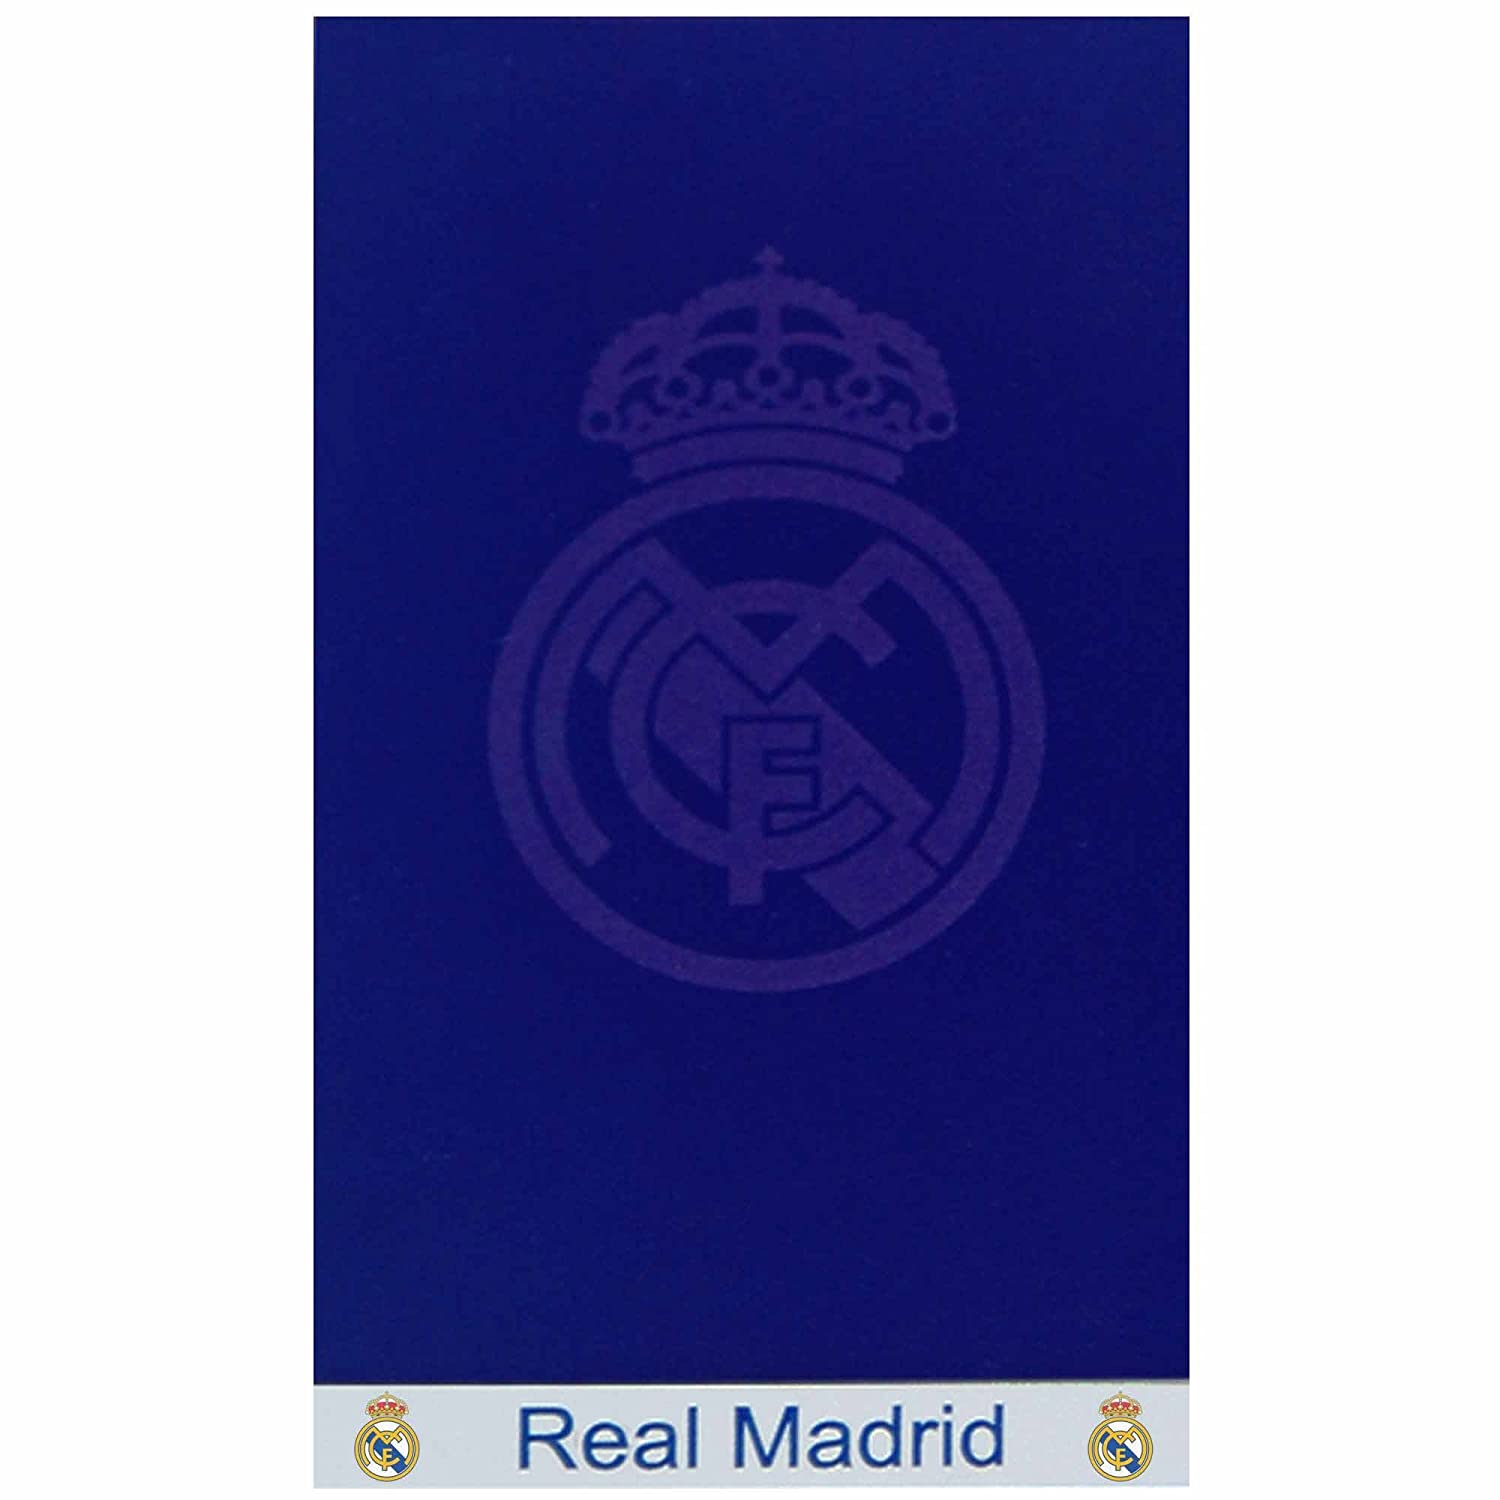 Real Madrid Giant Crest Badetuch TOWEL229 NVY